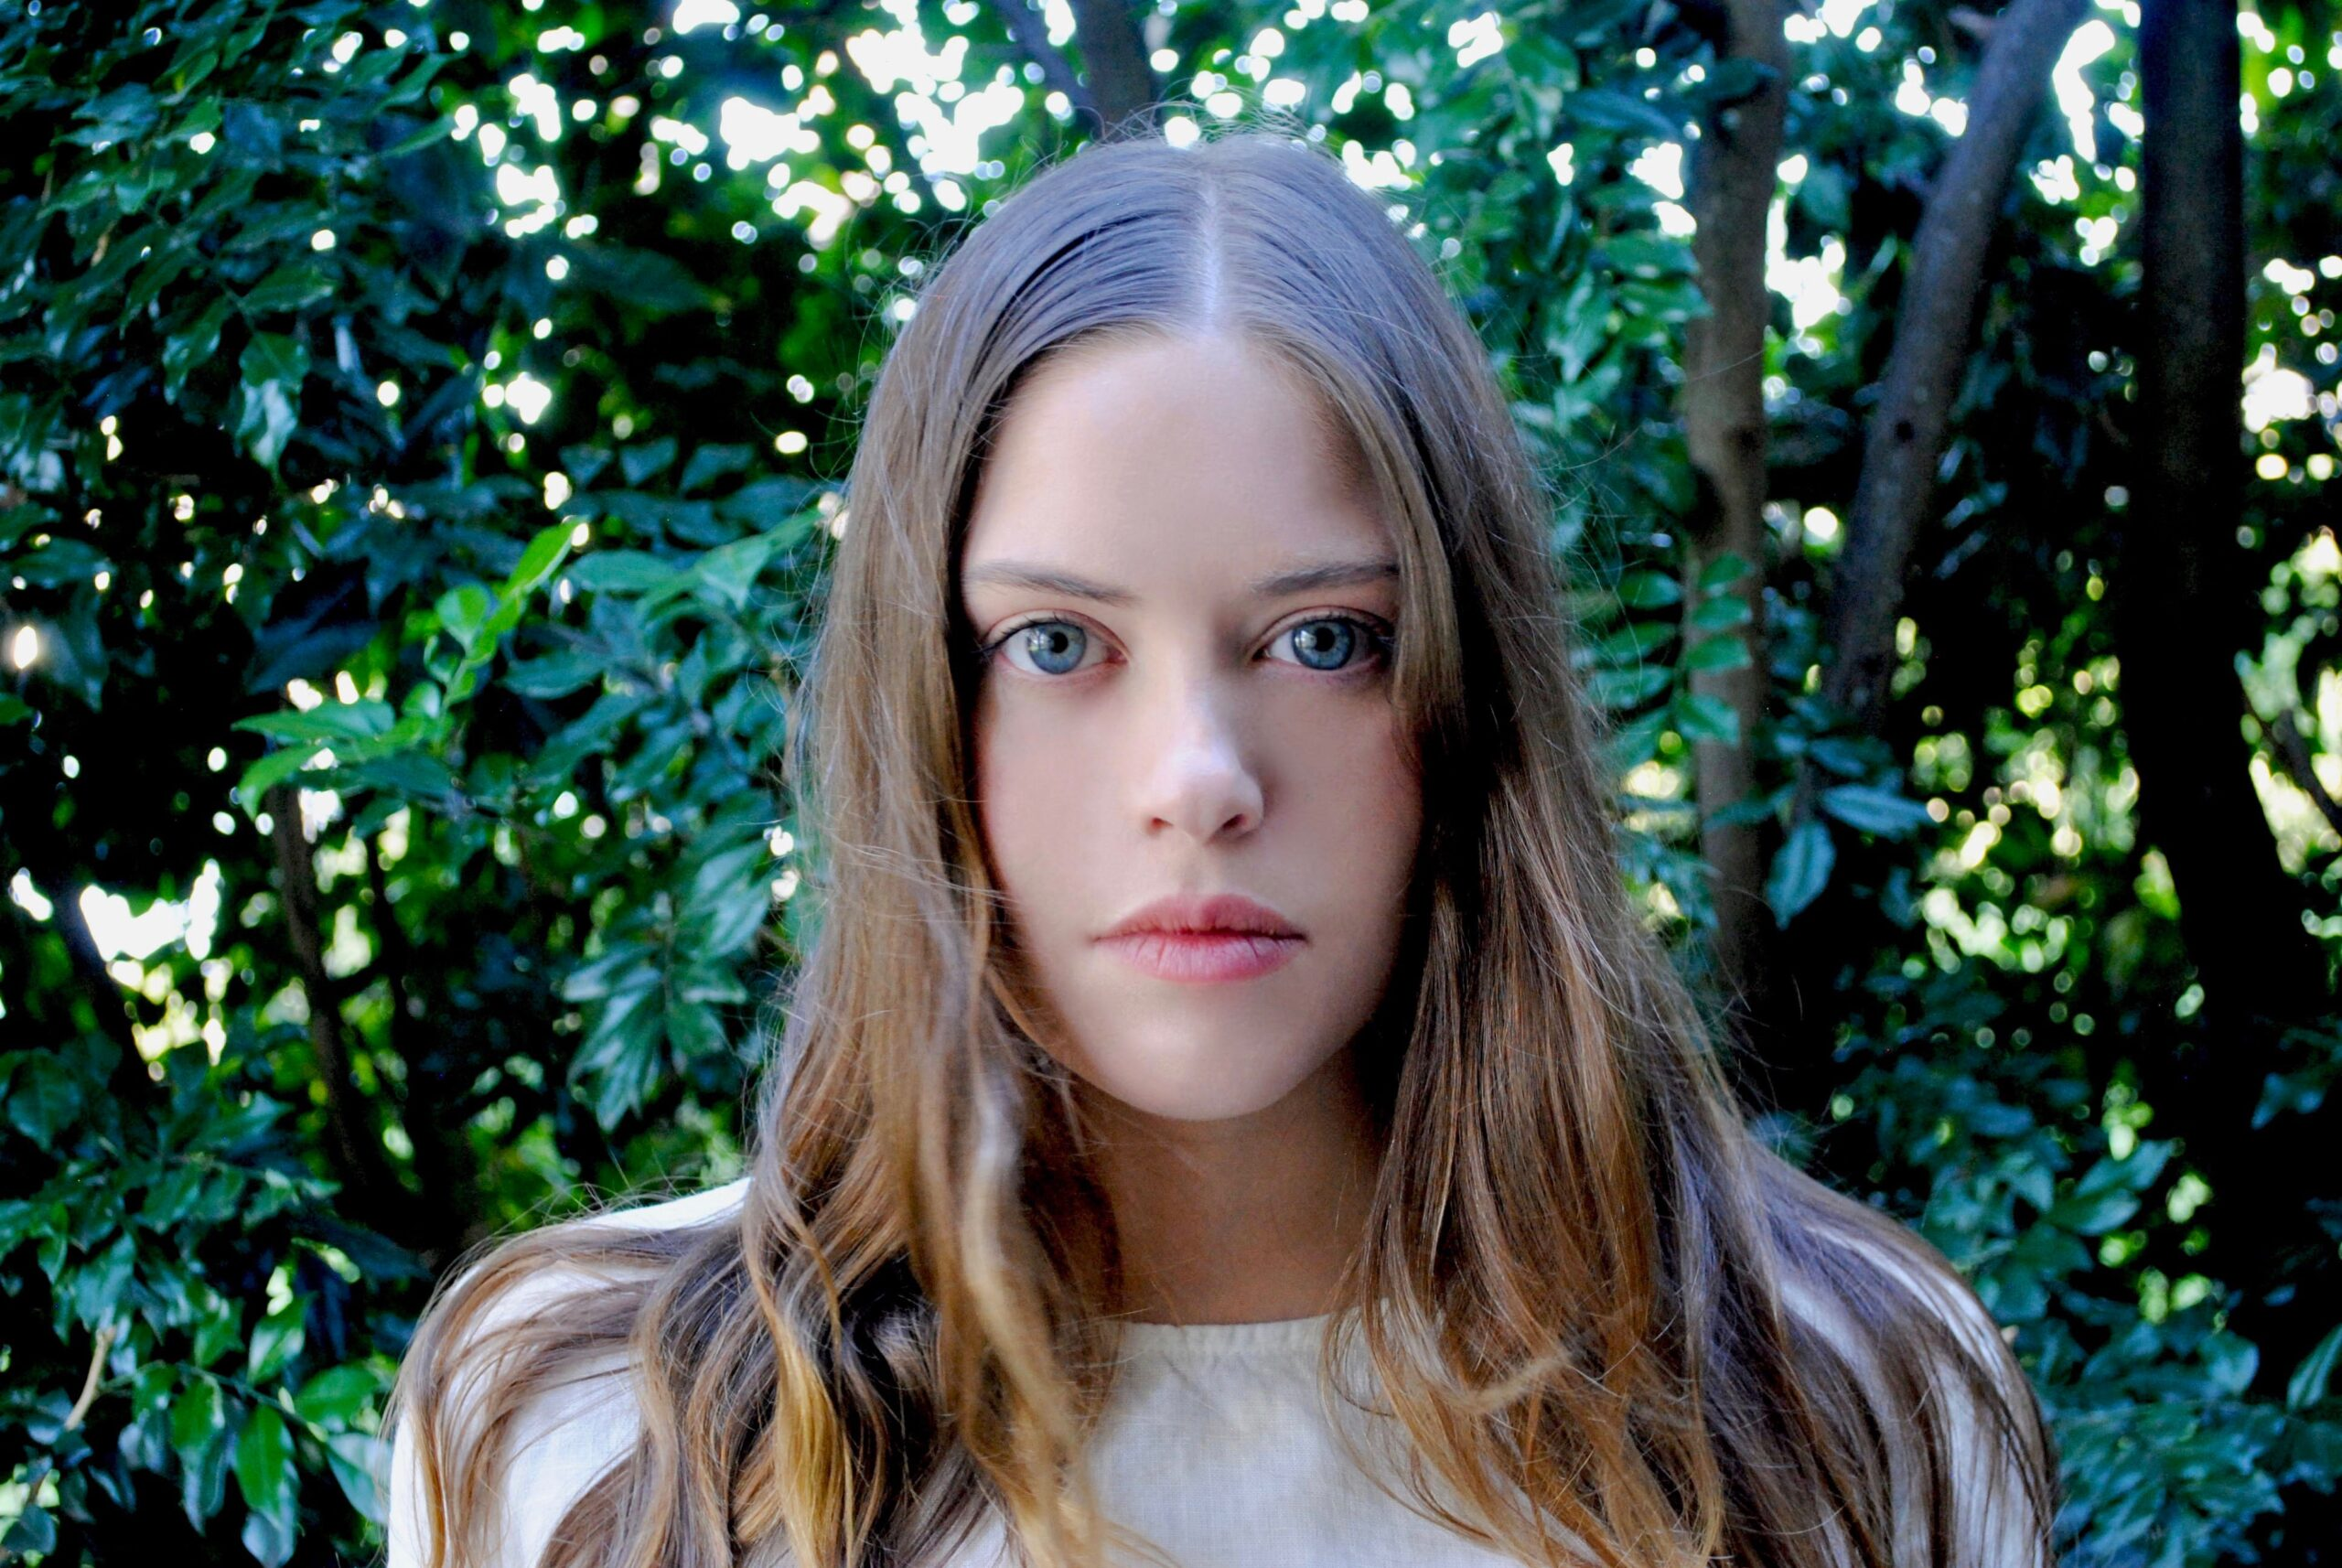 SYDNEY'S GRACE FARRISS SHARES FUNKY SINGLE 'ALL THE PEOPLE'